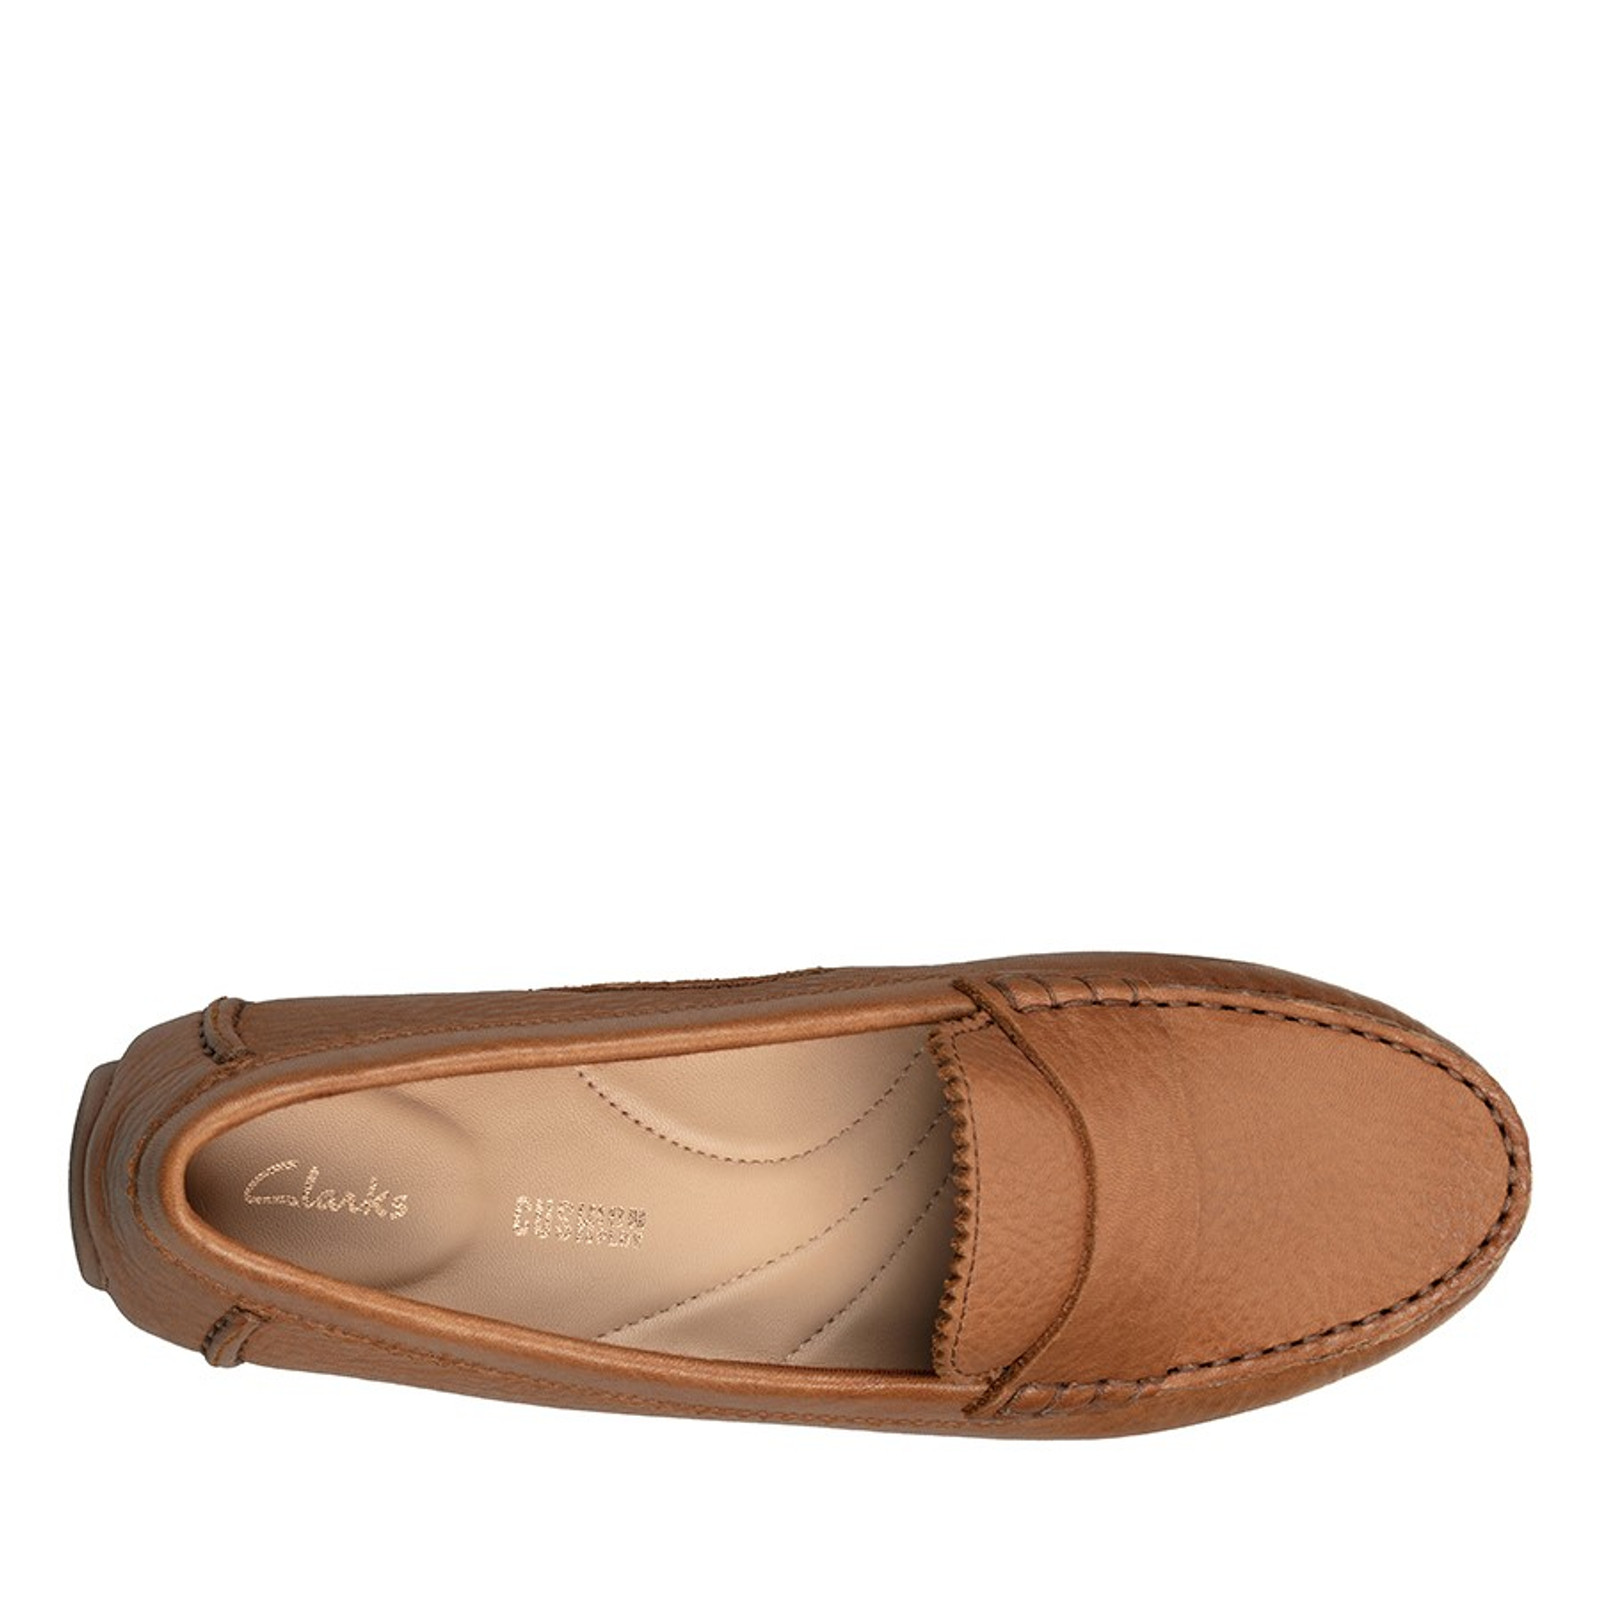 Clarks Womens C MOCC Tan Leather